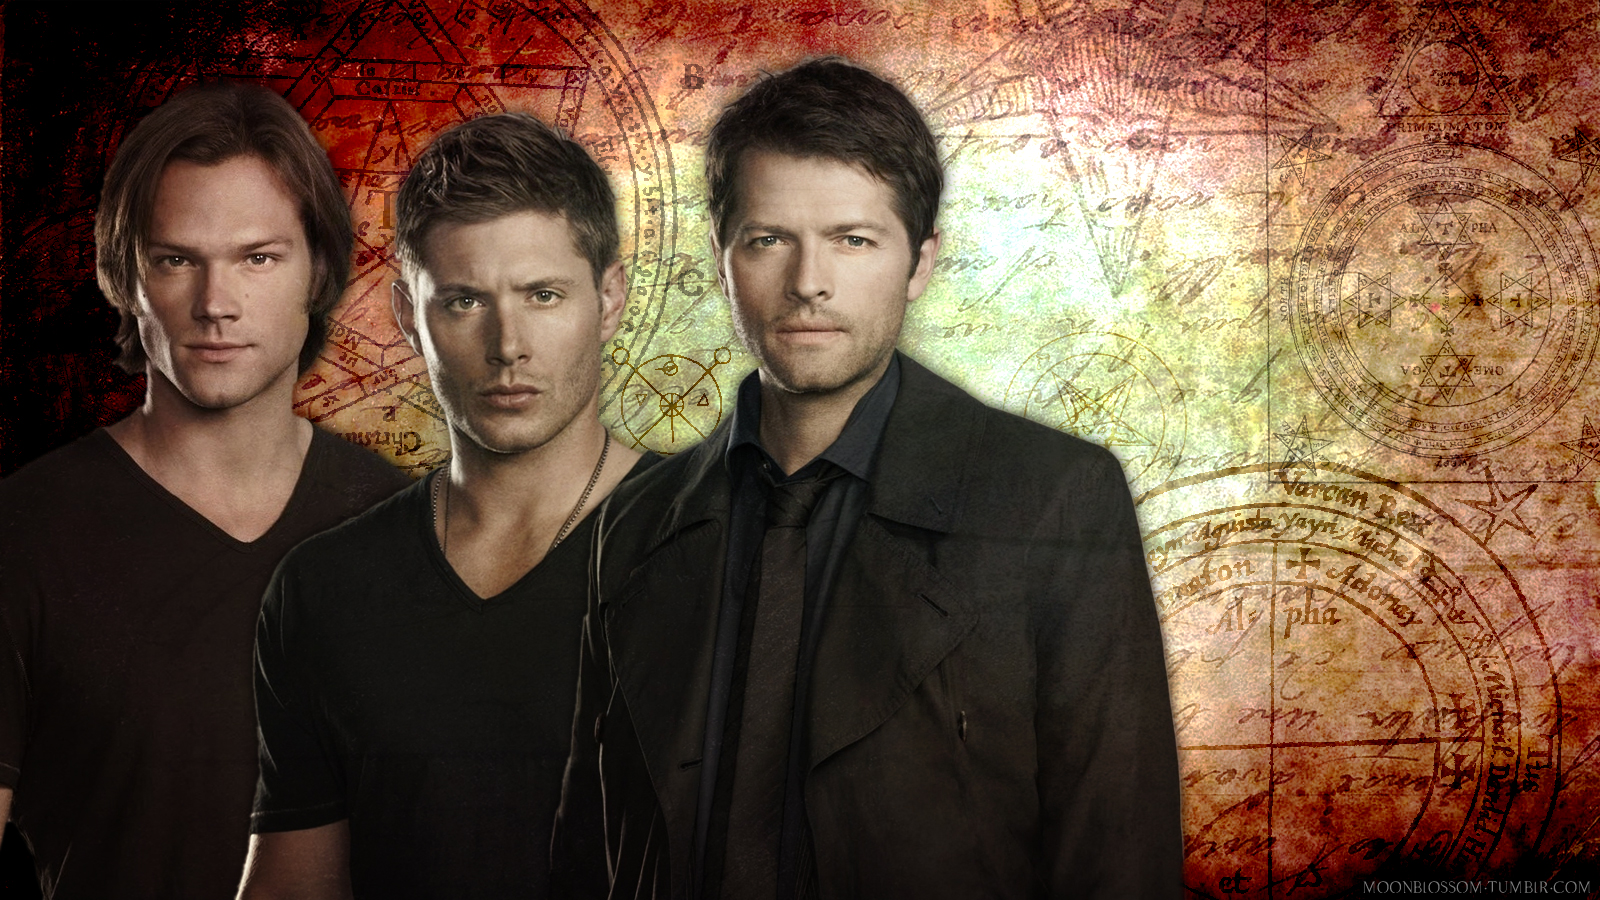 49 Sam Dean And Castiel Wallpaper On Wallpapersafari